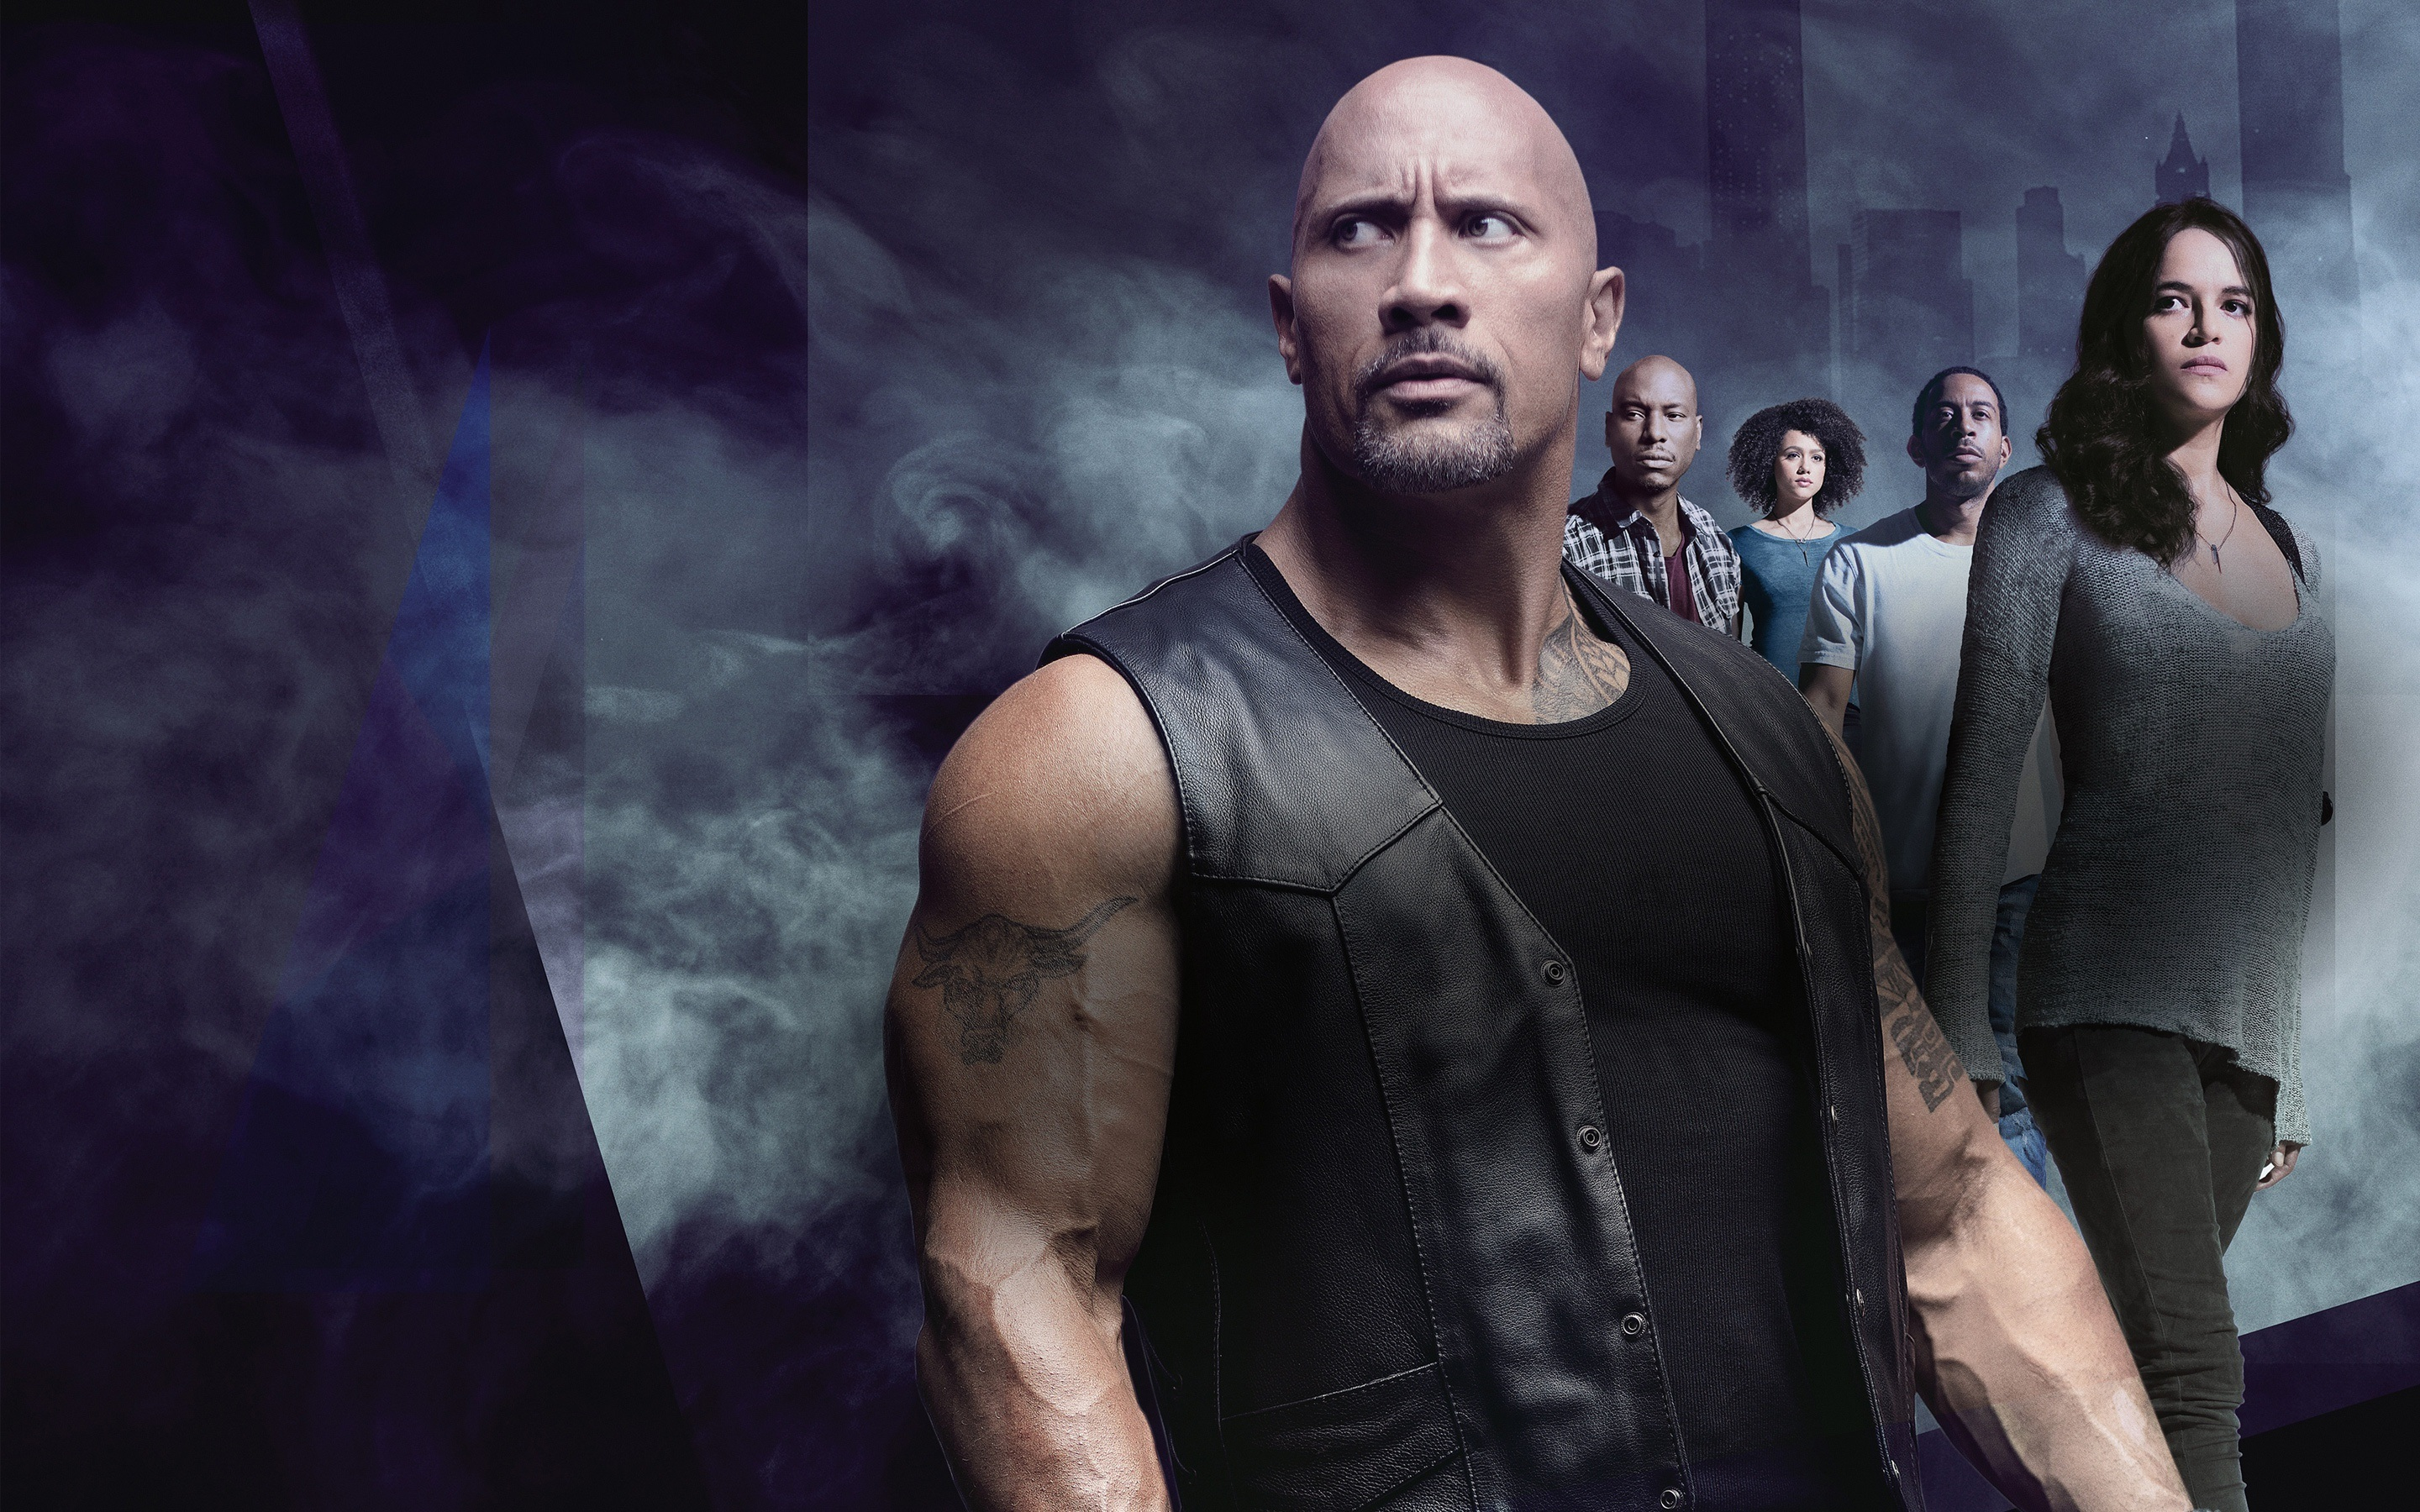 fast and furious 8 full movie download in hd